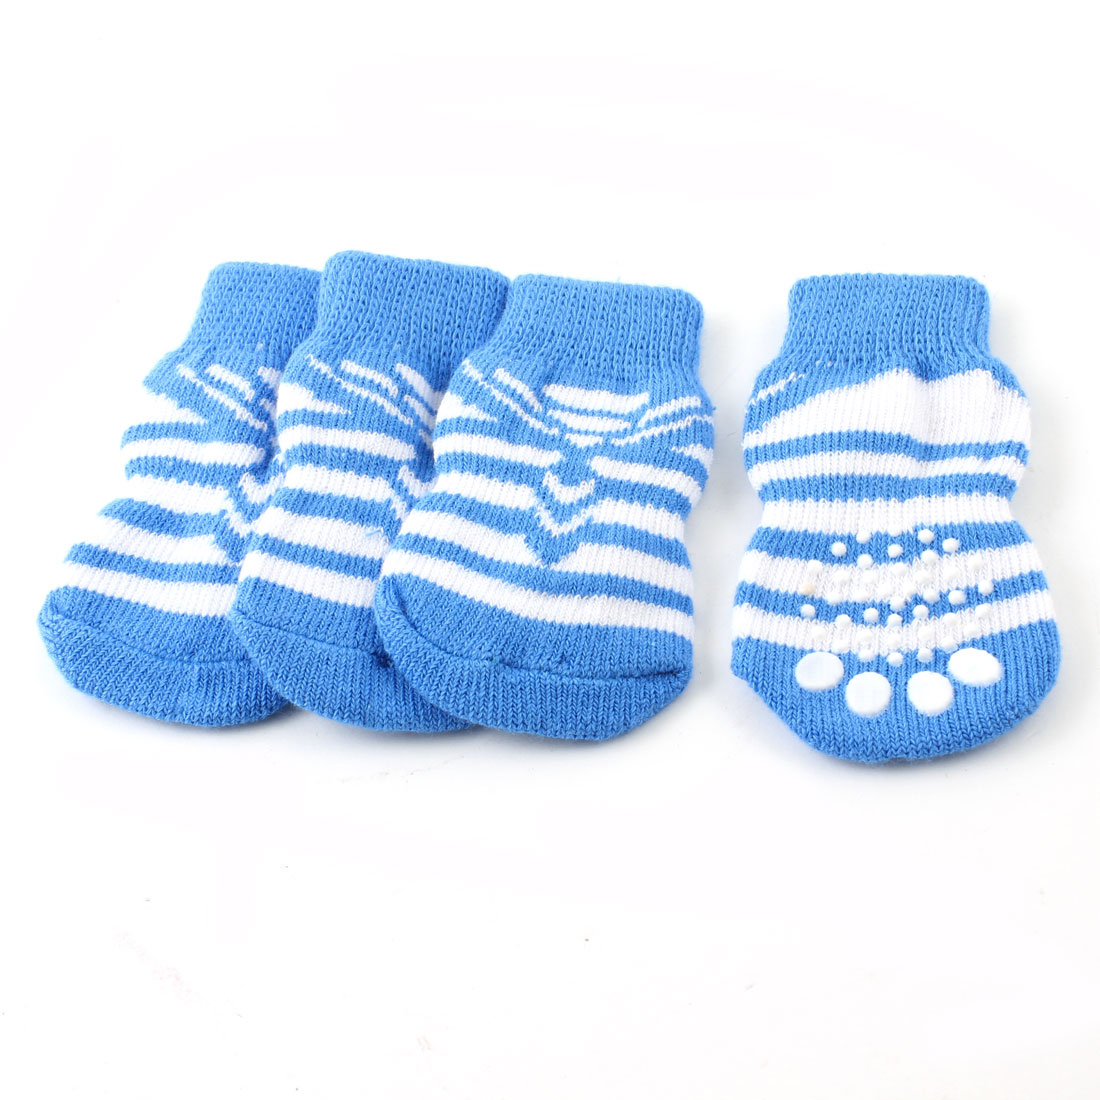 2 Pairs White Blue Knitting Paw Stripe Pattern Nonslip Elastic Pet Dog Socks S